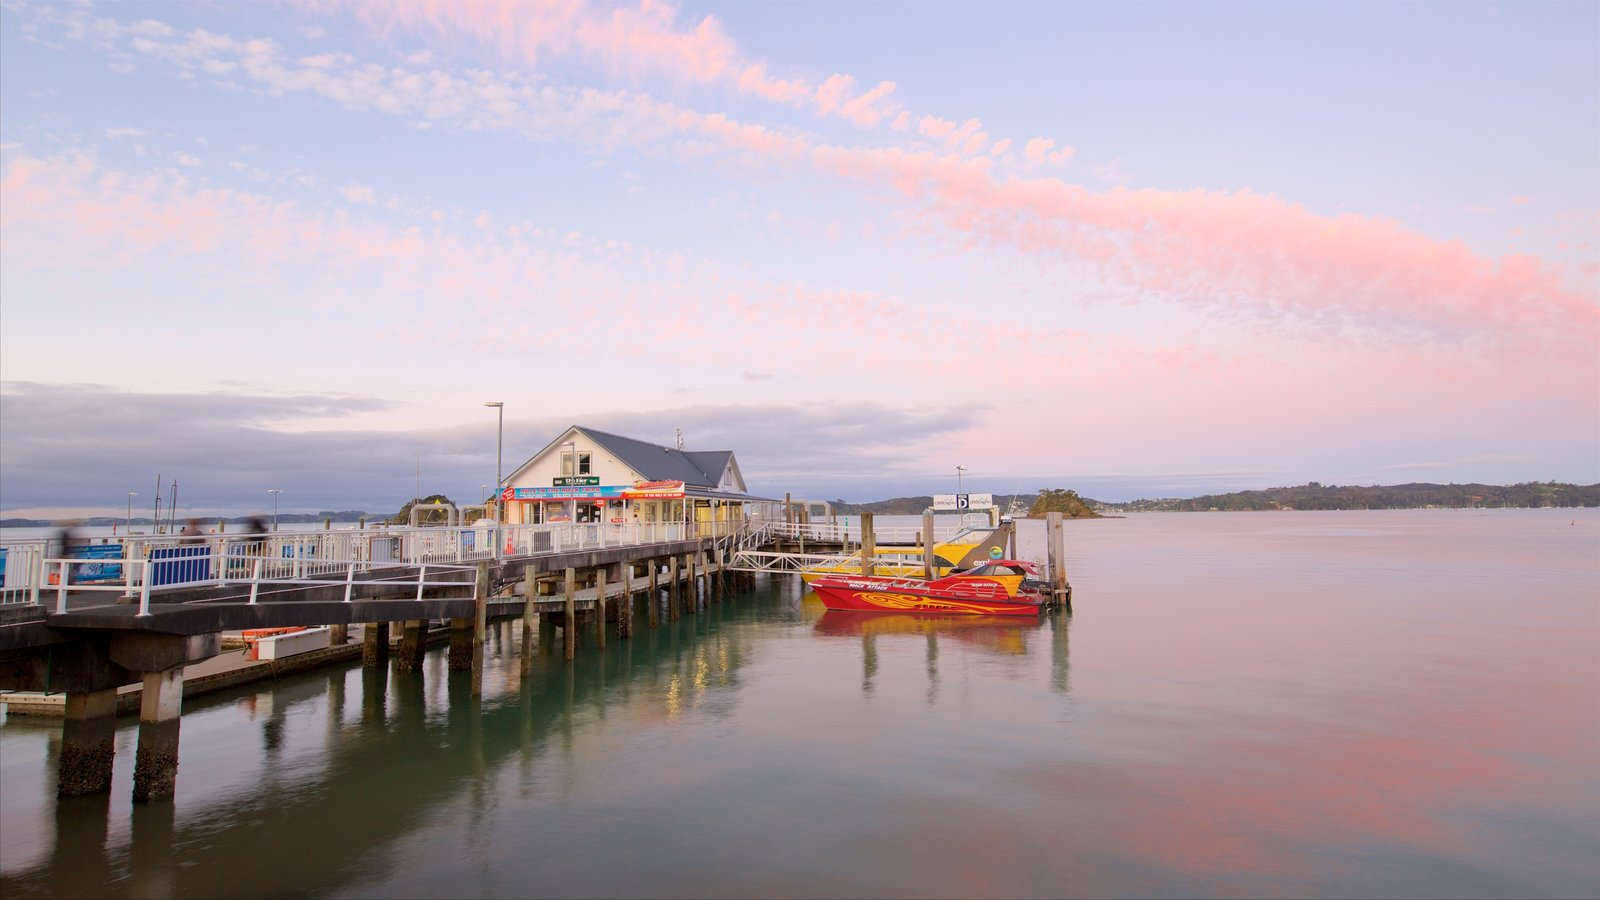 Paihia Wharf which includes a sunset and a bay or harbor